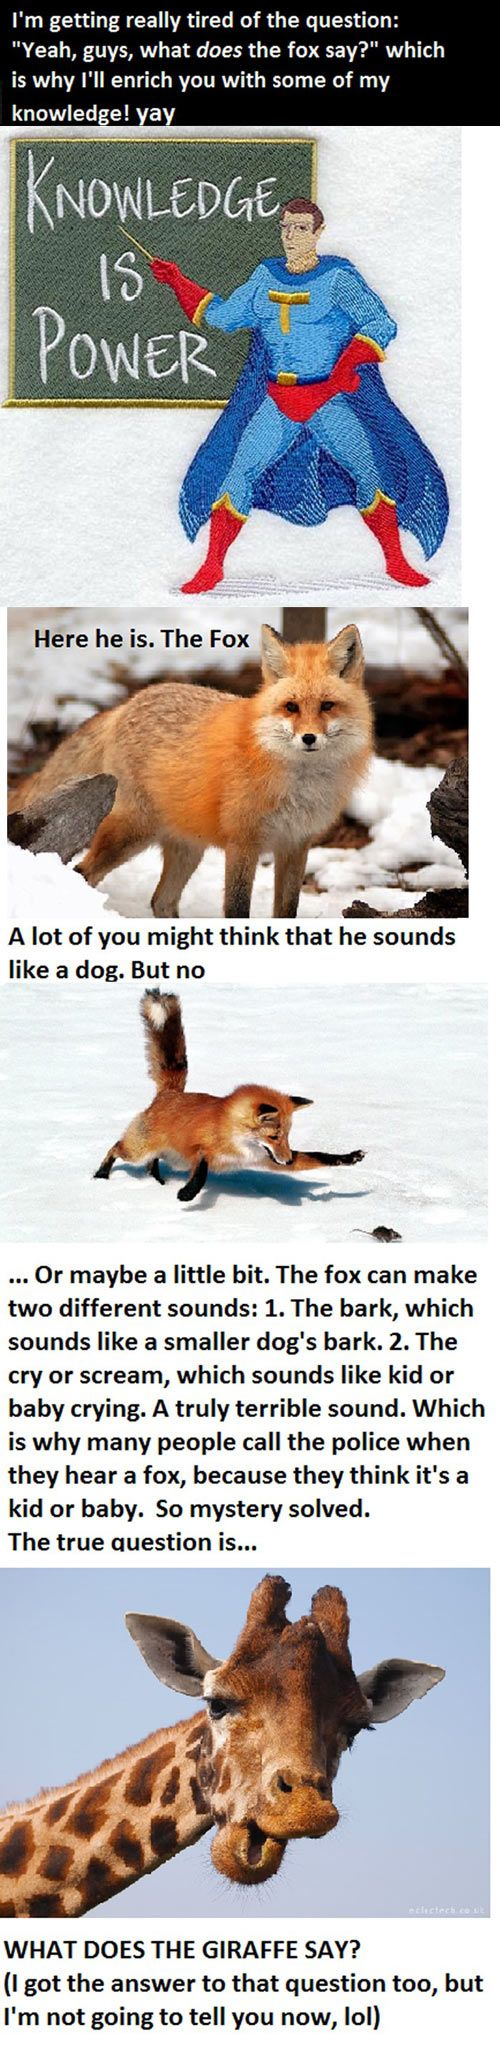 What the fox really says...: Prayer, Giggle, Humorous Meme, Fox Memes, Foxes Don T, Smile, Funny Memes